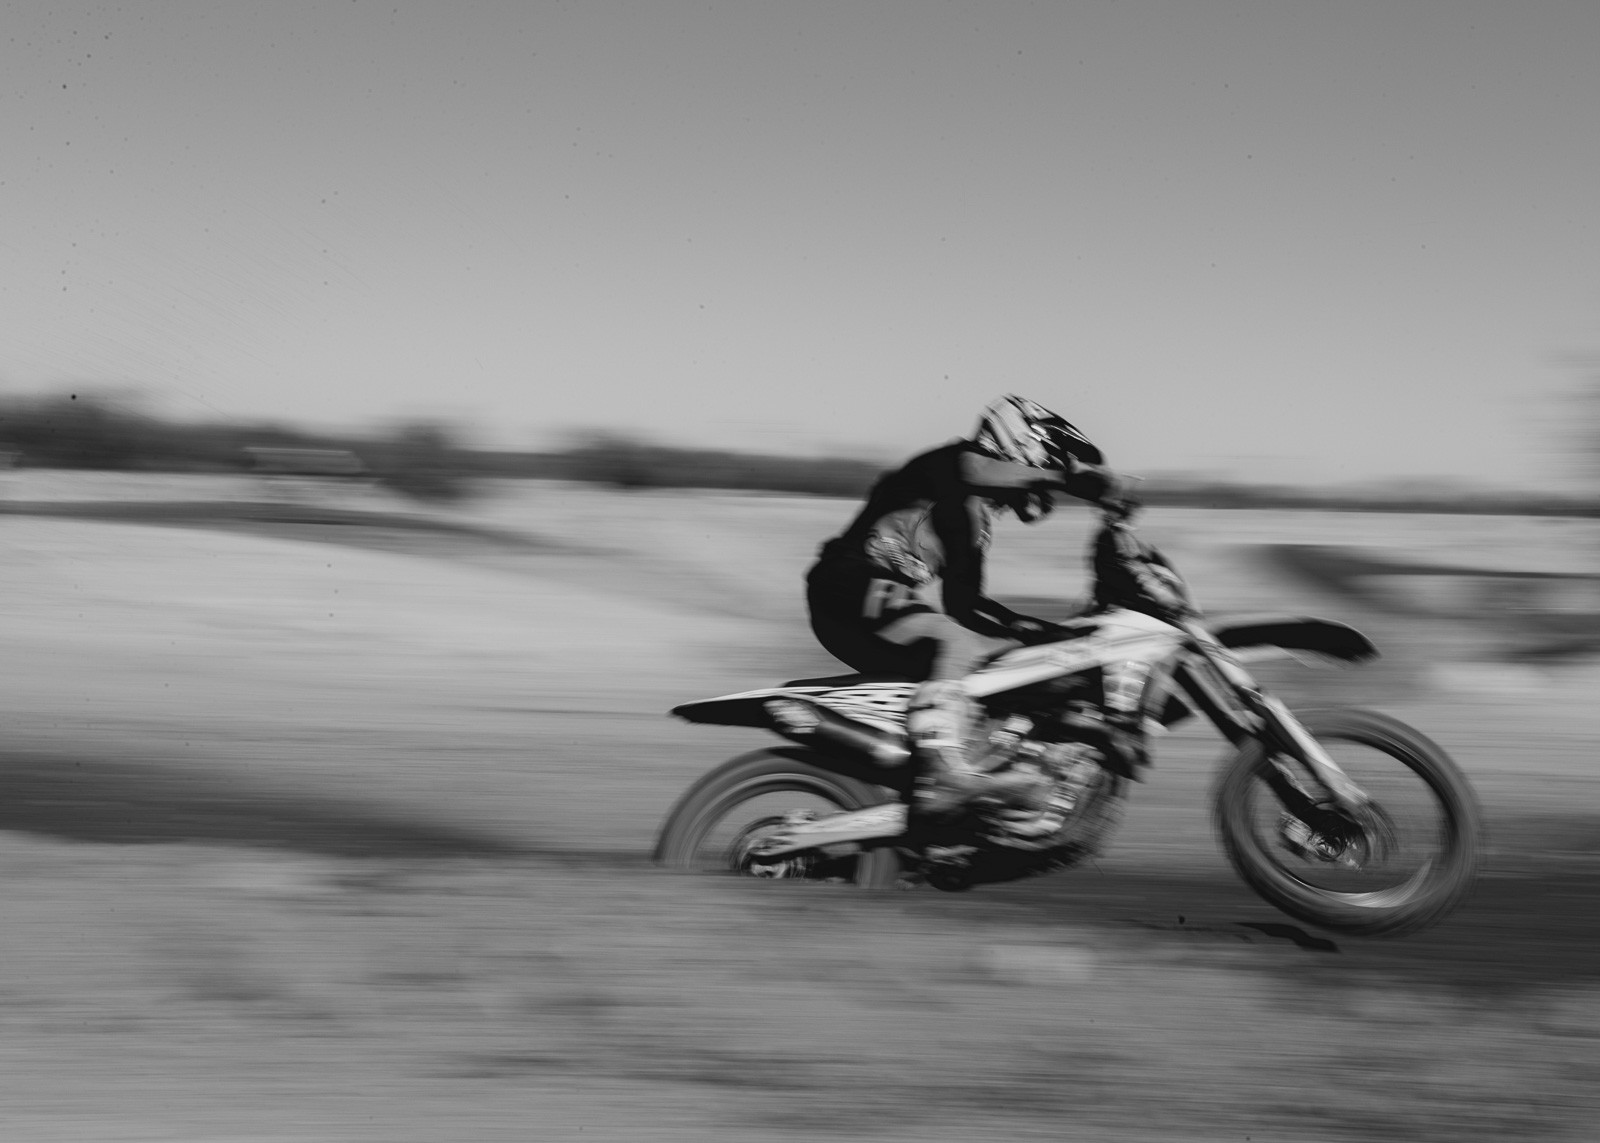 AZ Open of Motocross | Friday Racing Gallery - GuyB - Motocross Pictures - Vital MX